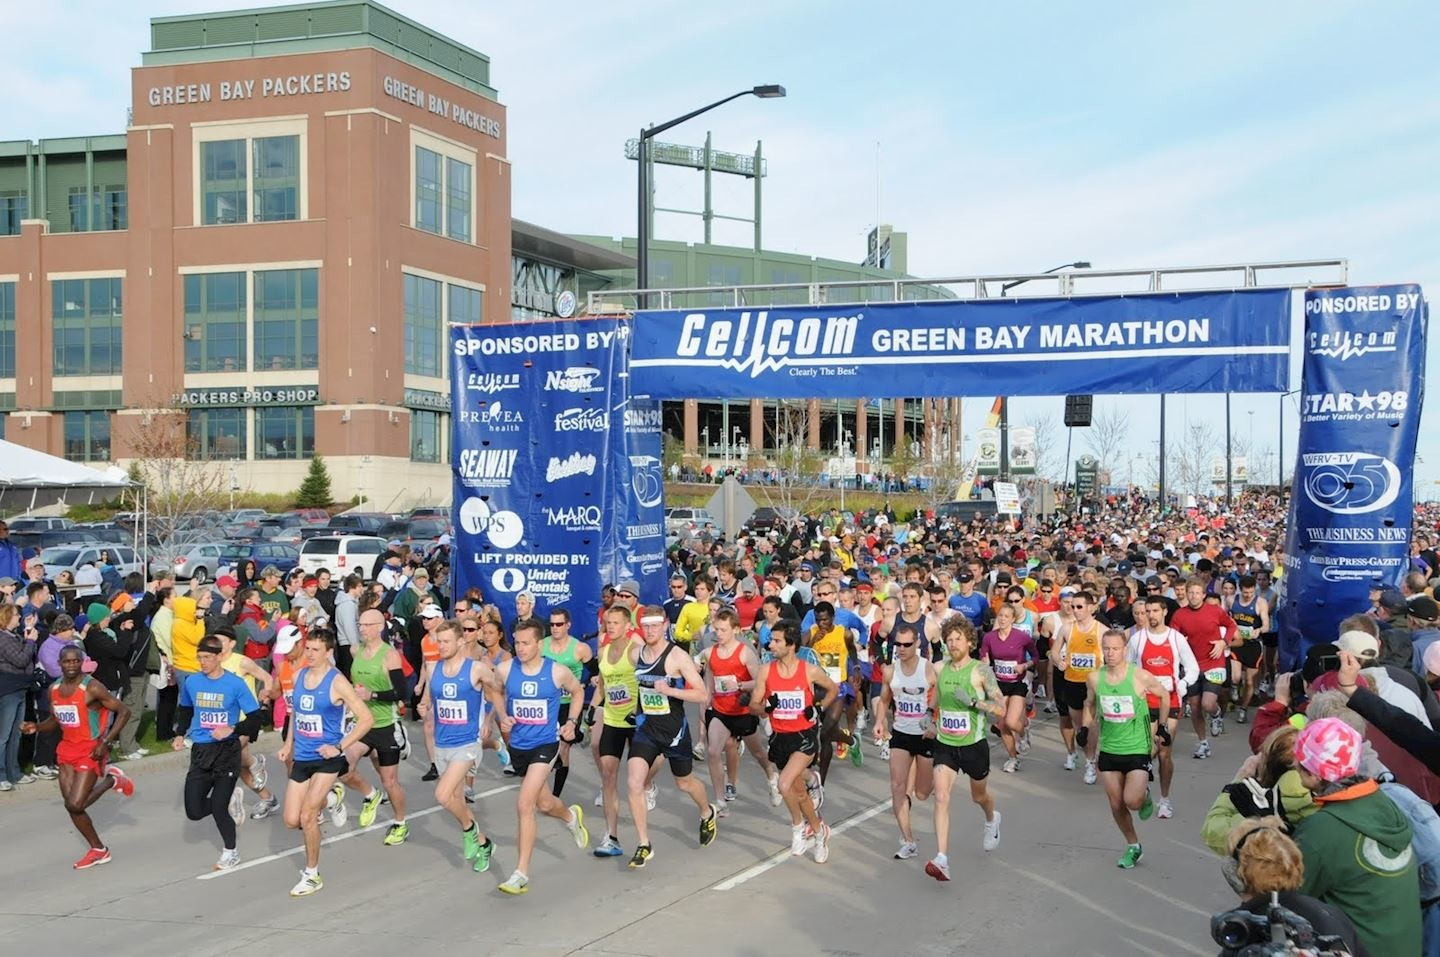 The Cellcom Green Bay Marathon is going to be a virtual run event